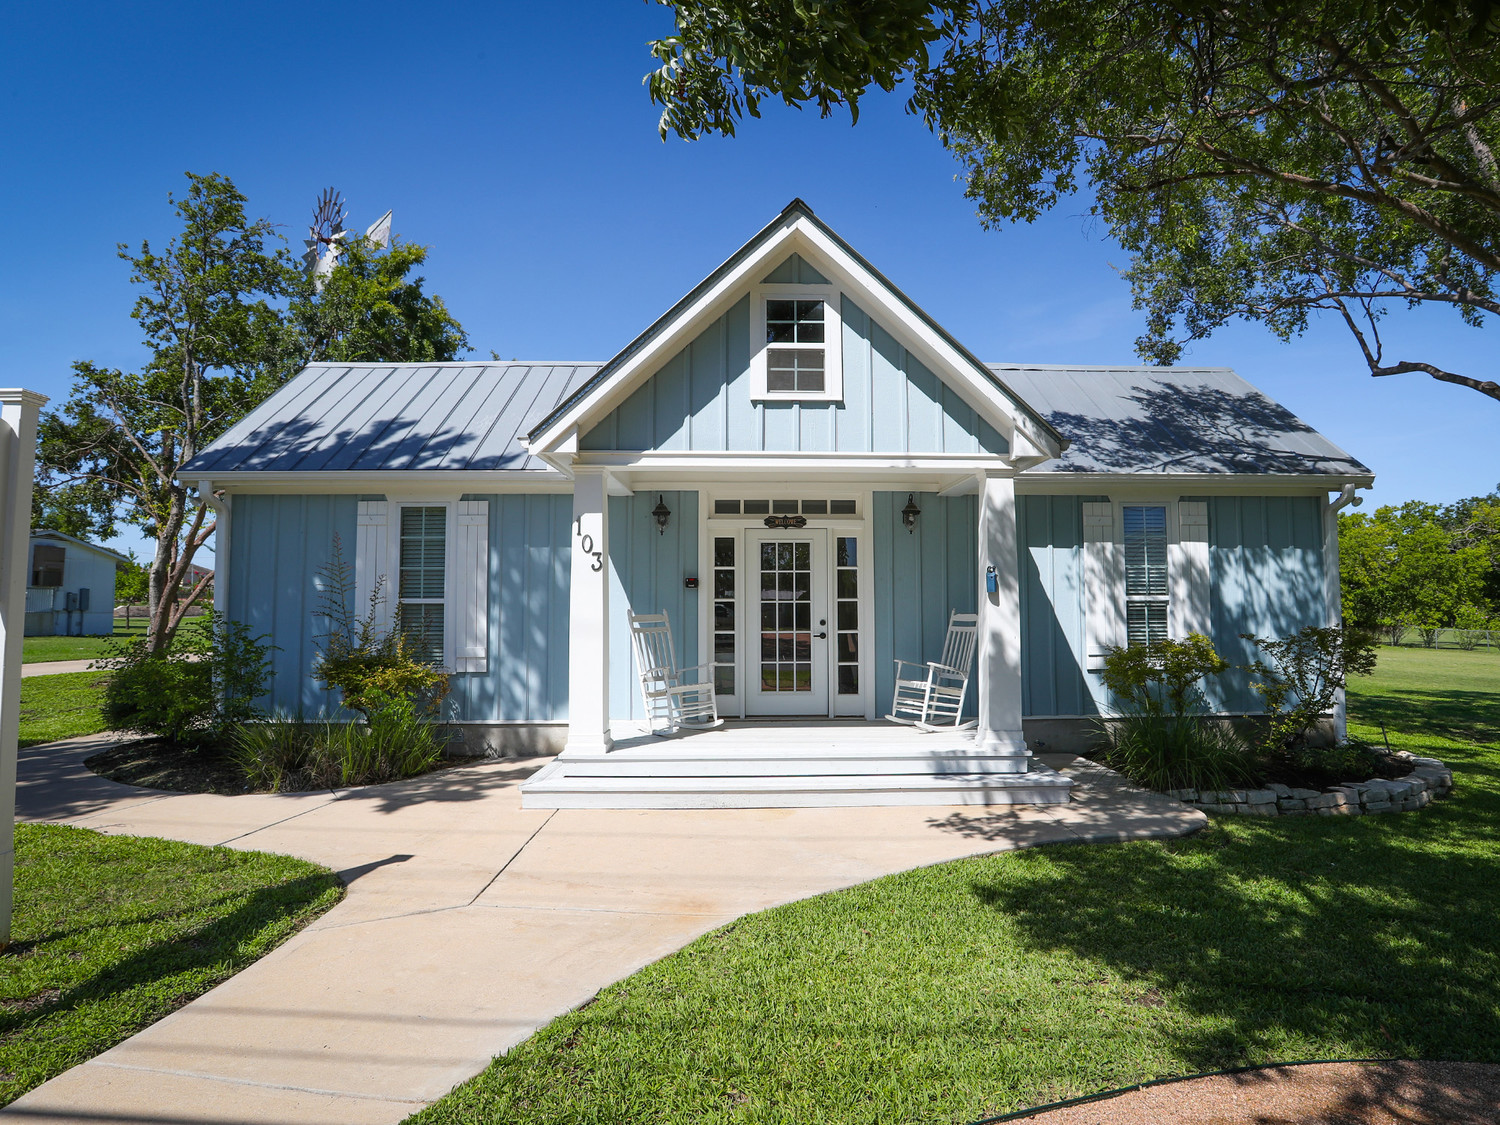 The architectural style of CMP Management at 103 N. West Drive in Leander highlights the historical architectural patterns and principles that may be included in the city's architectural pattern book for residential home development.